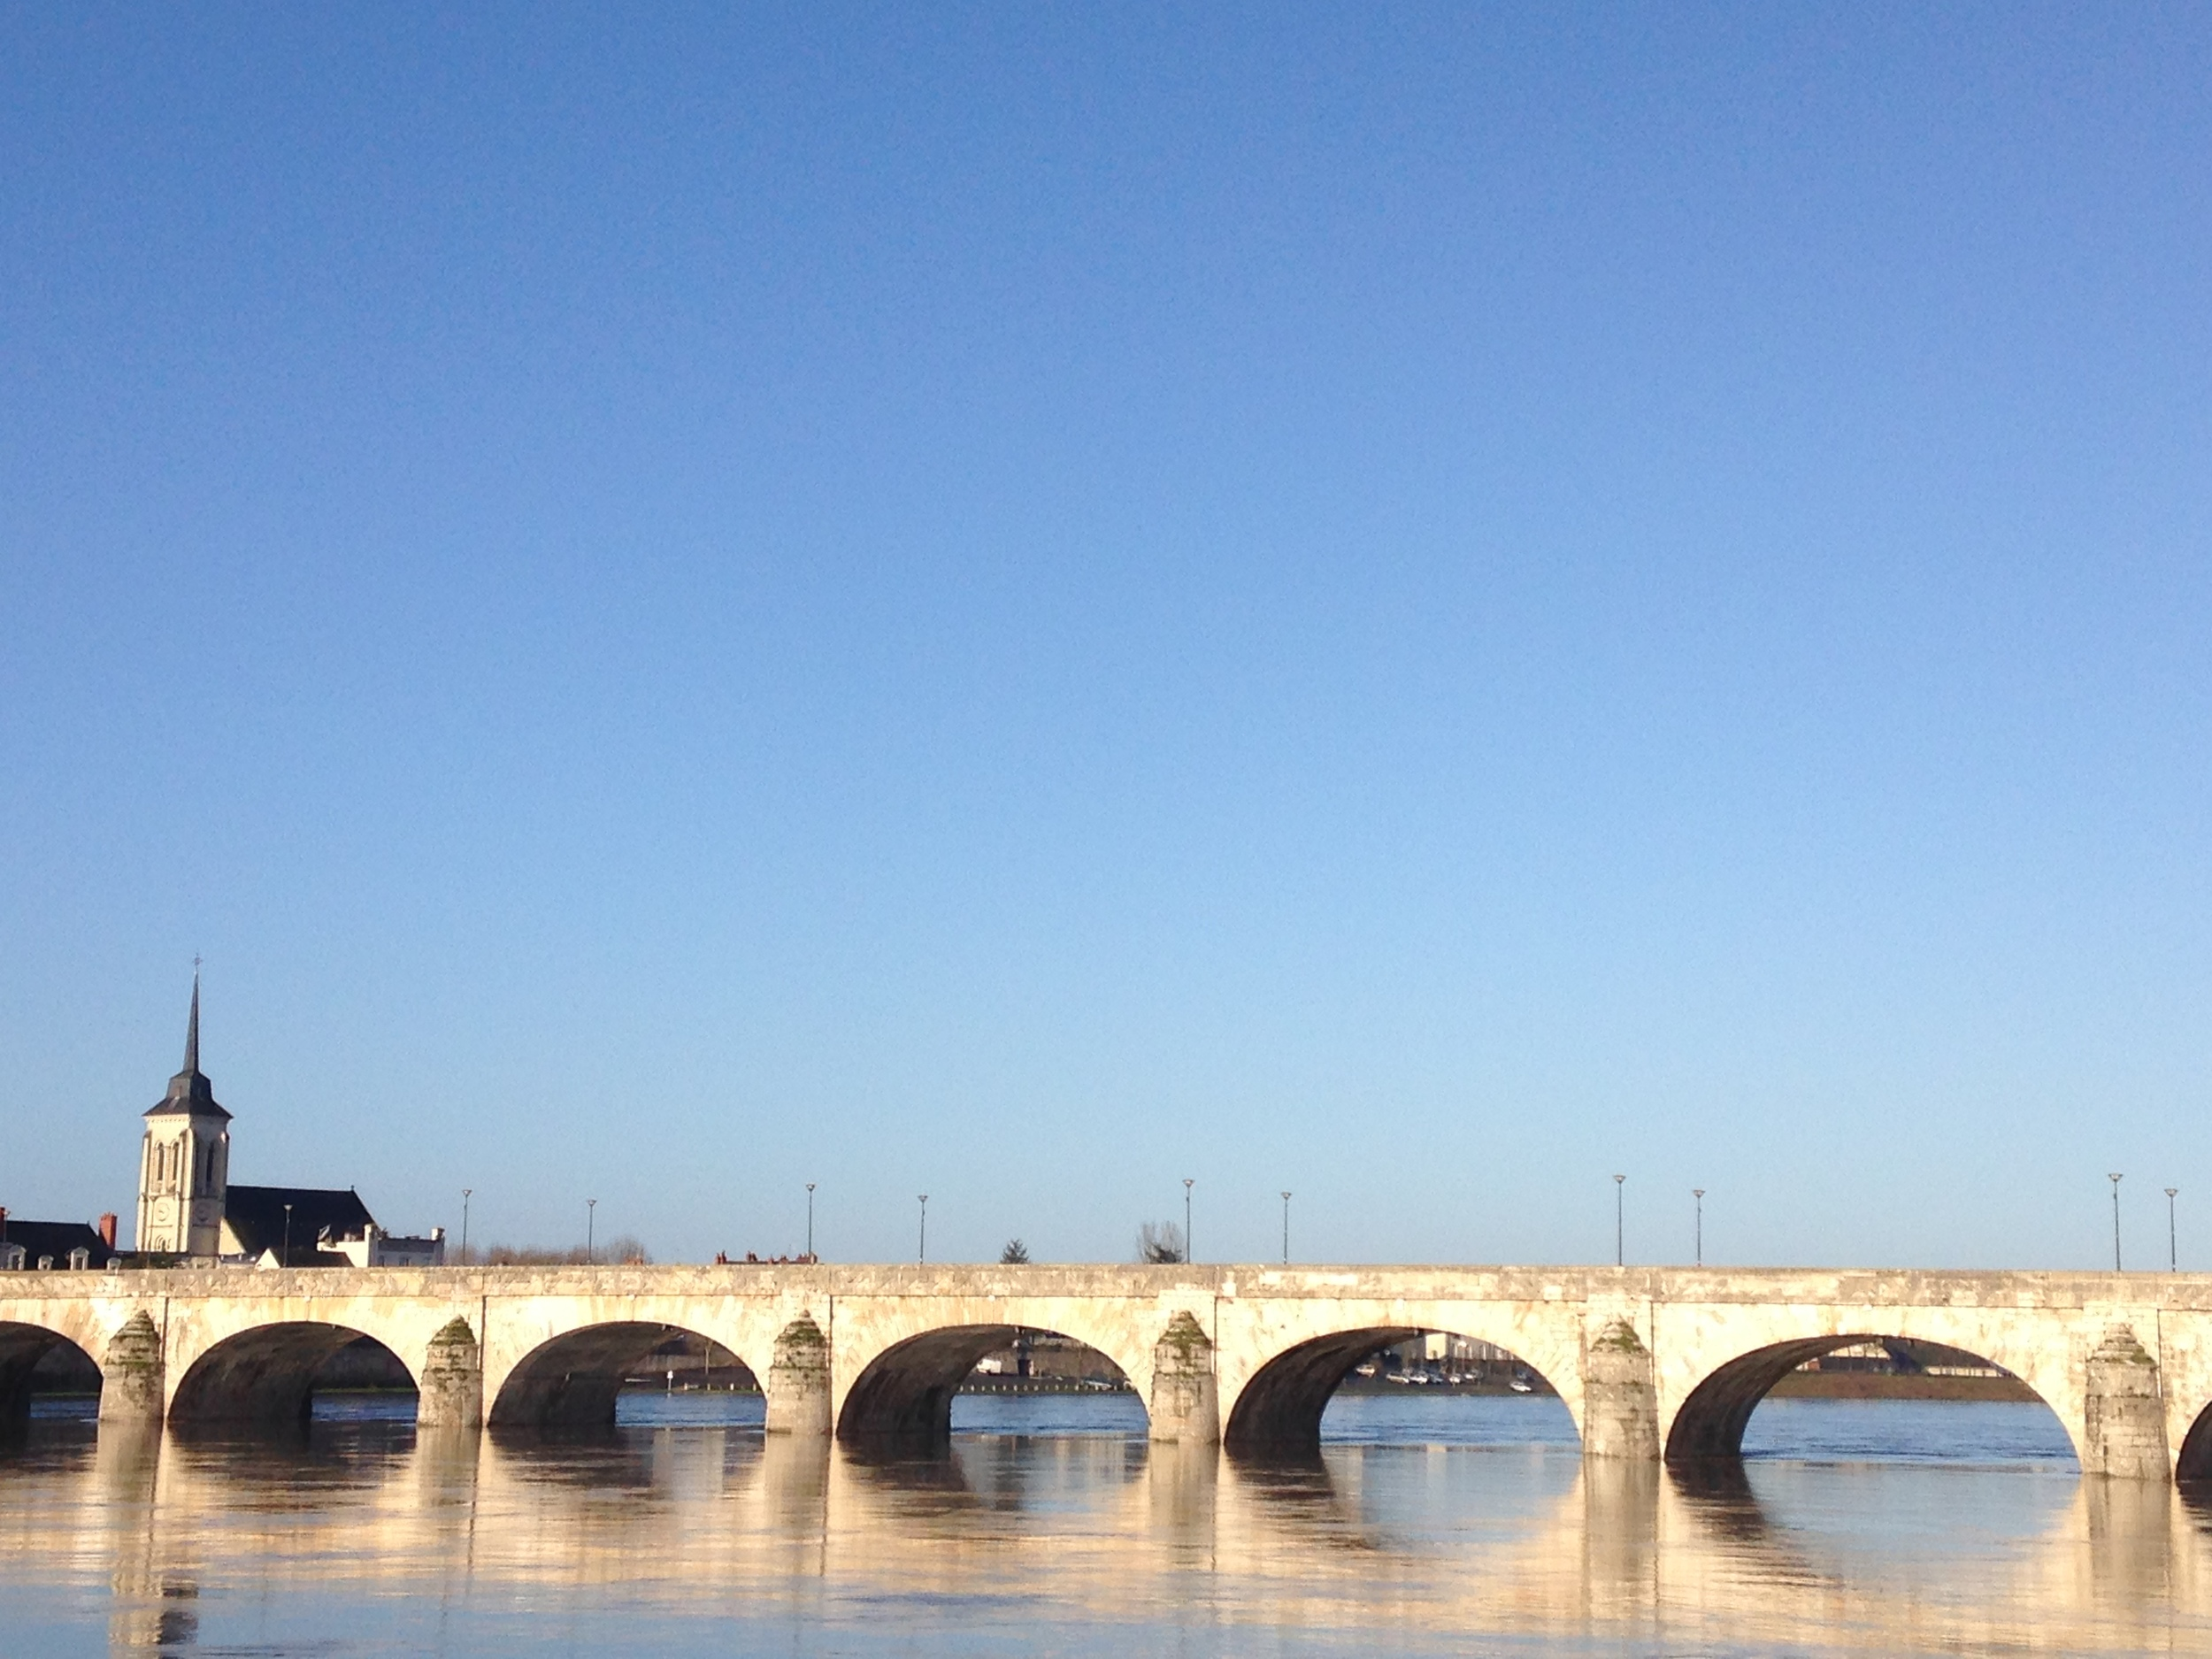 Saumur, site of the epic Dive Bouteille tasting